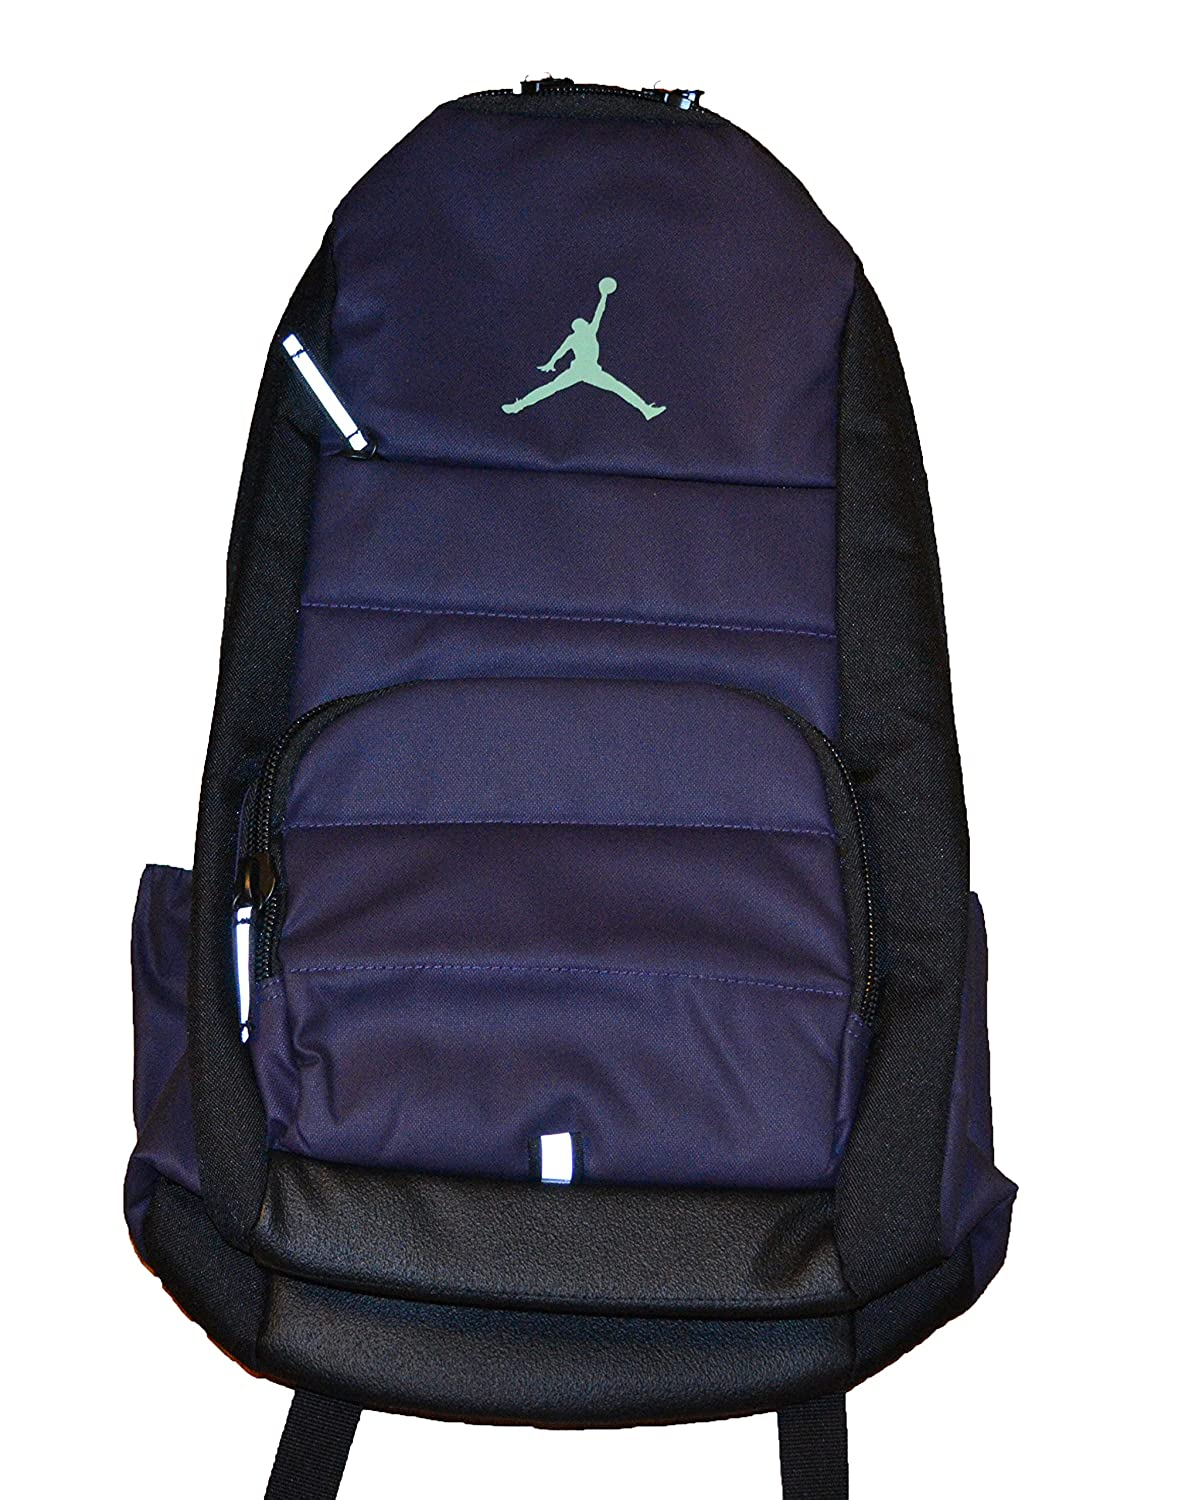 jordan backpack amazon